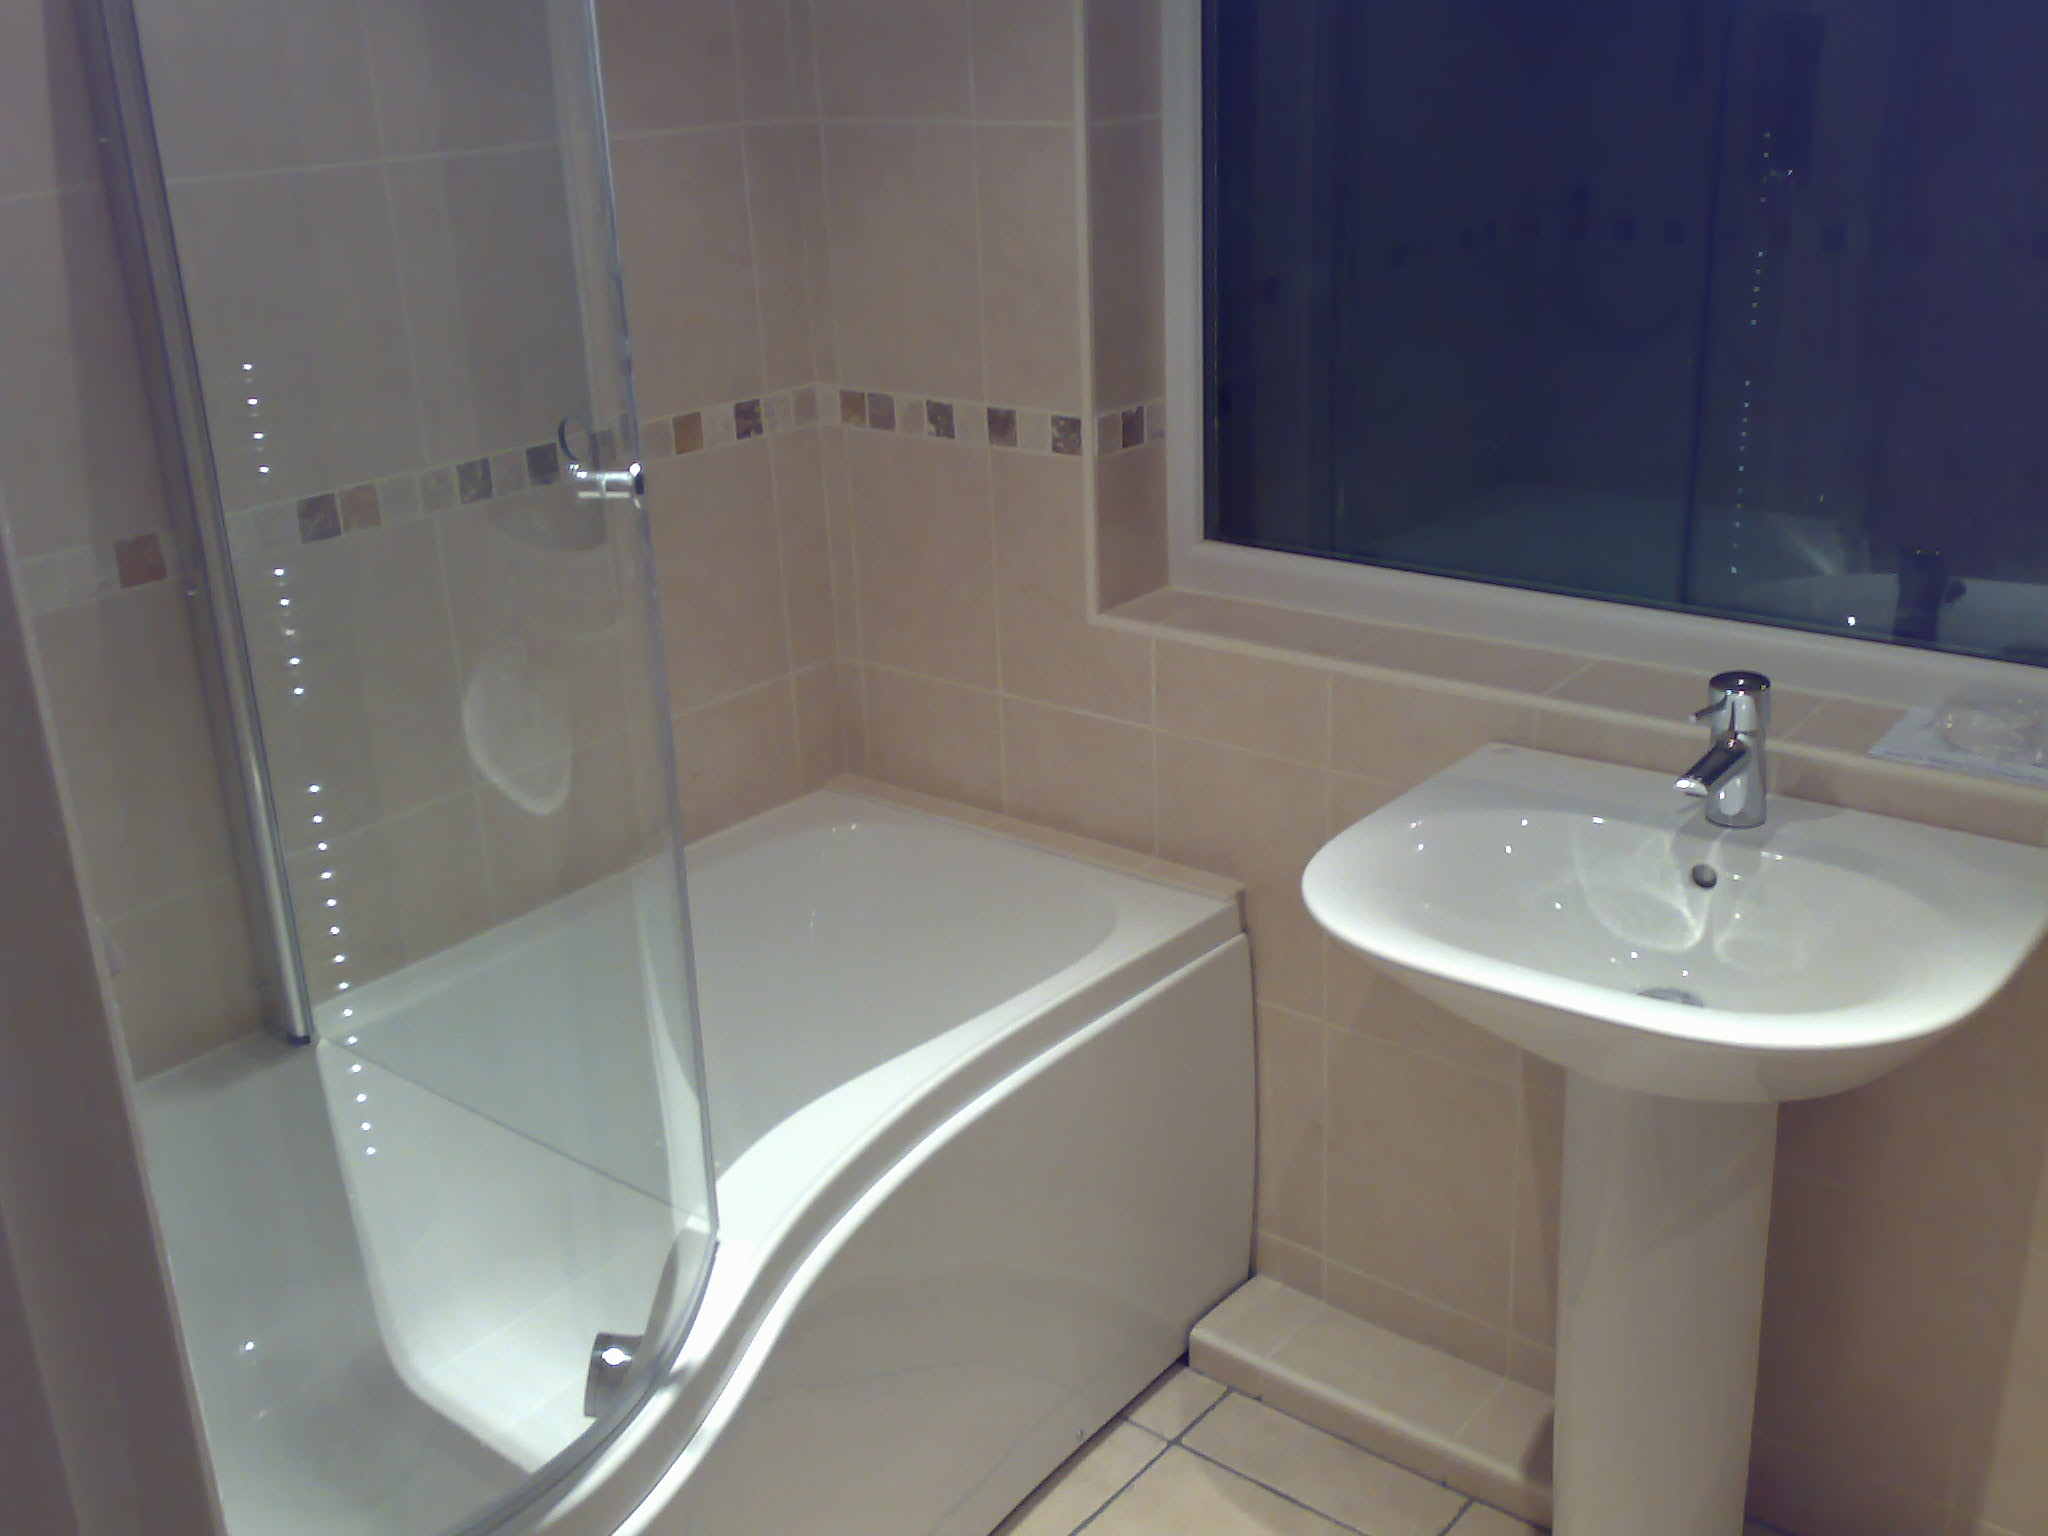 Bathroom Sinks Nottingham bathroom fitter for nottingham bathroom refurbishments, shower